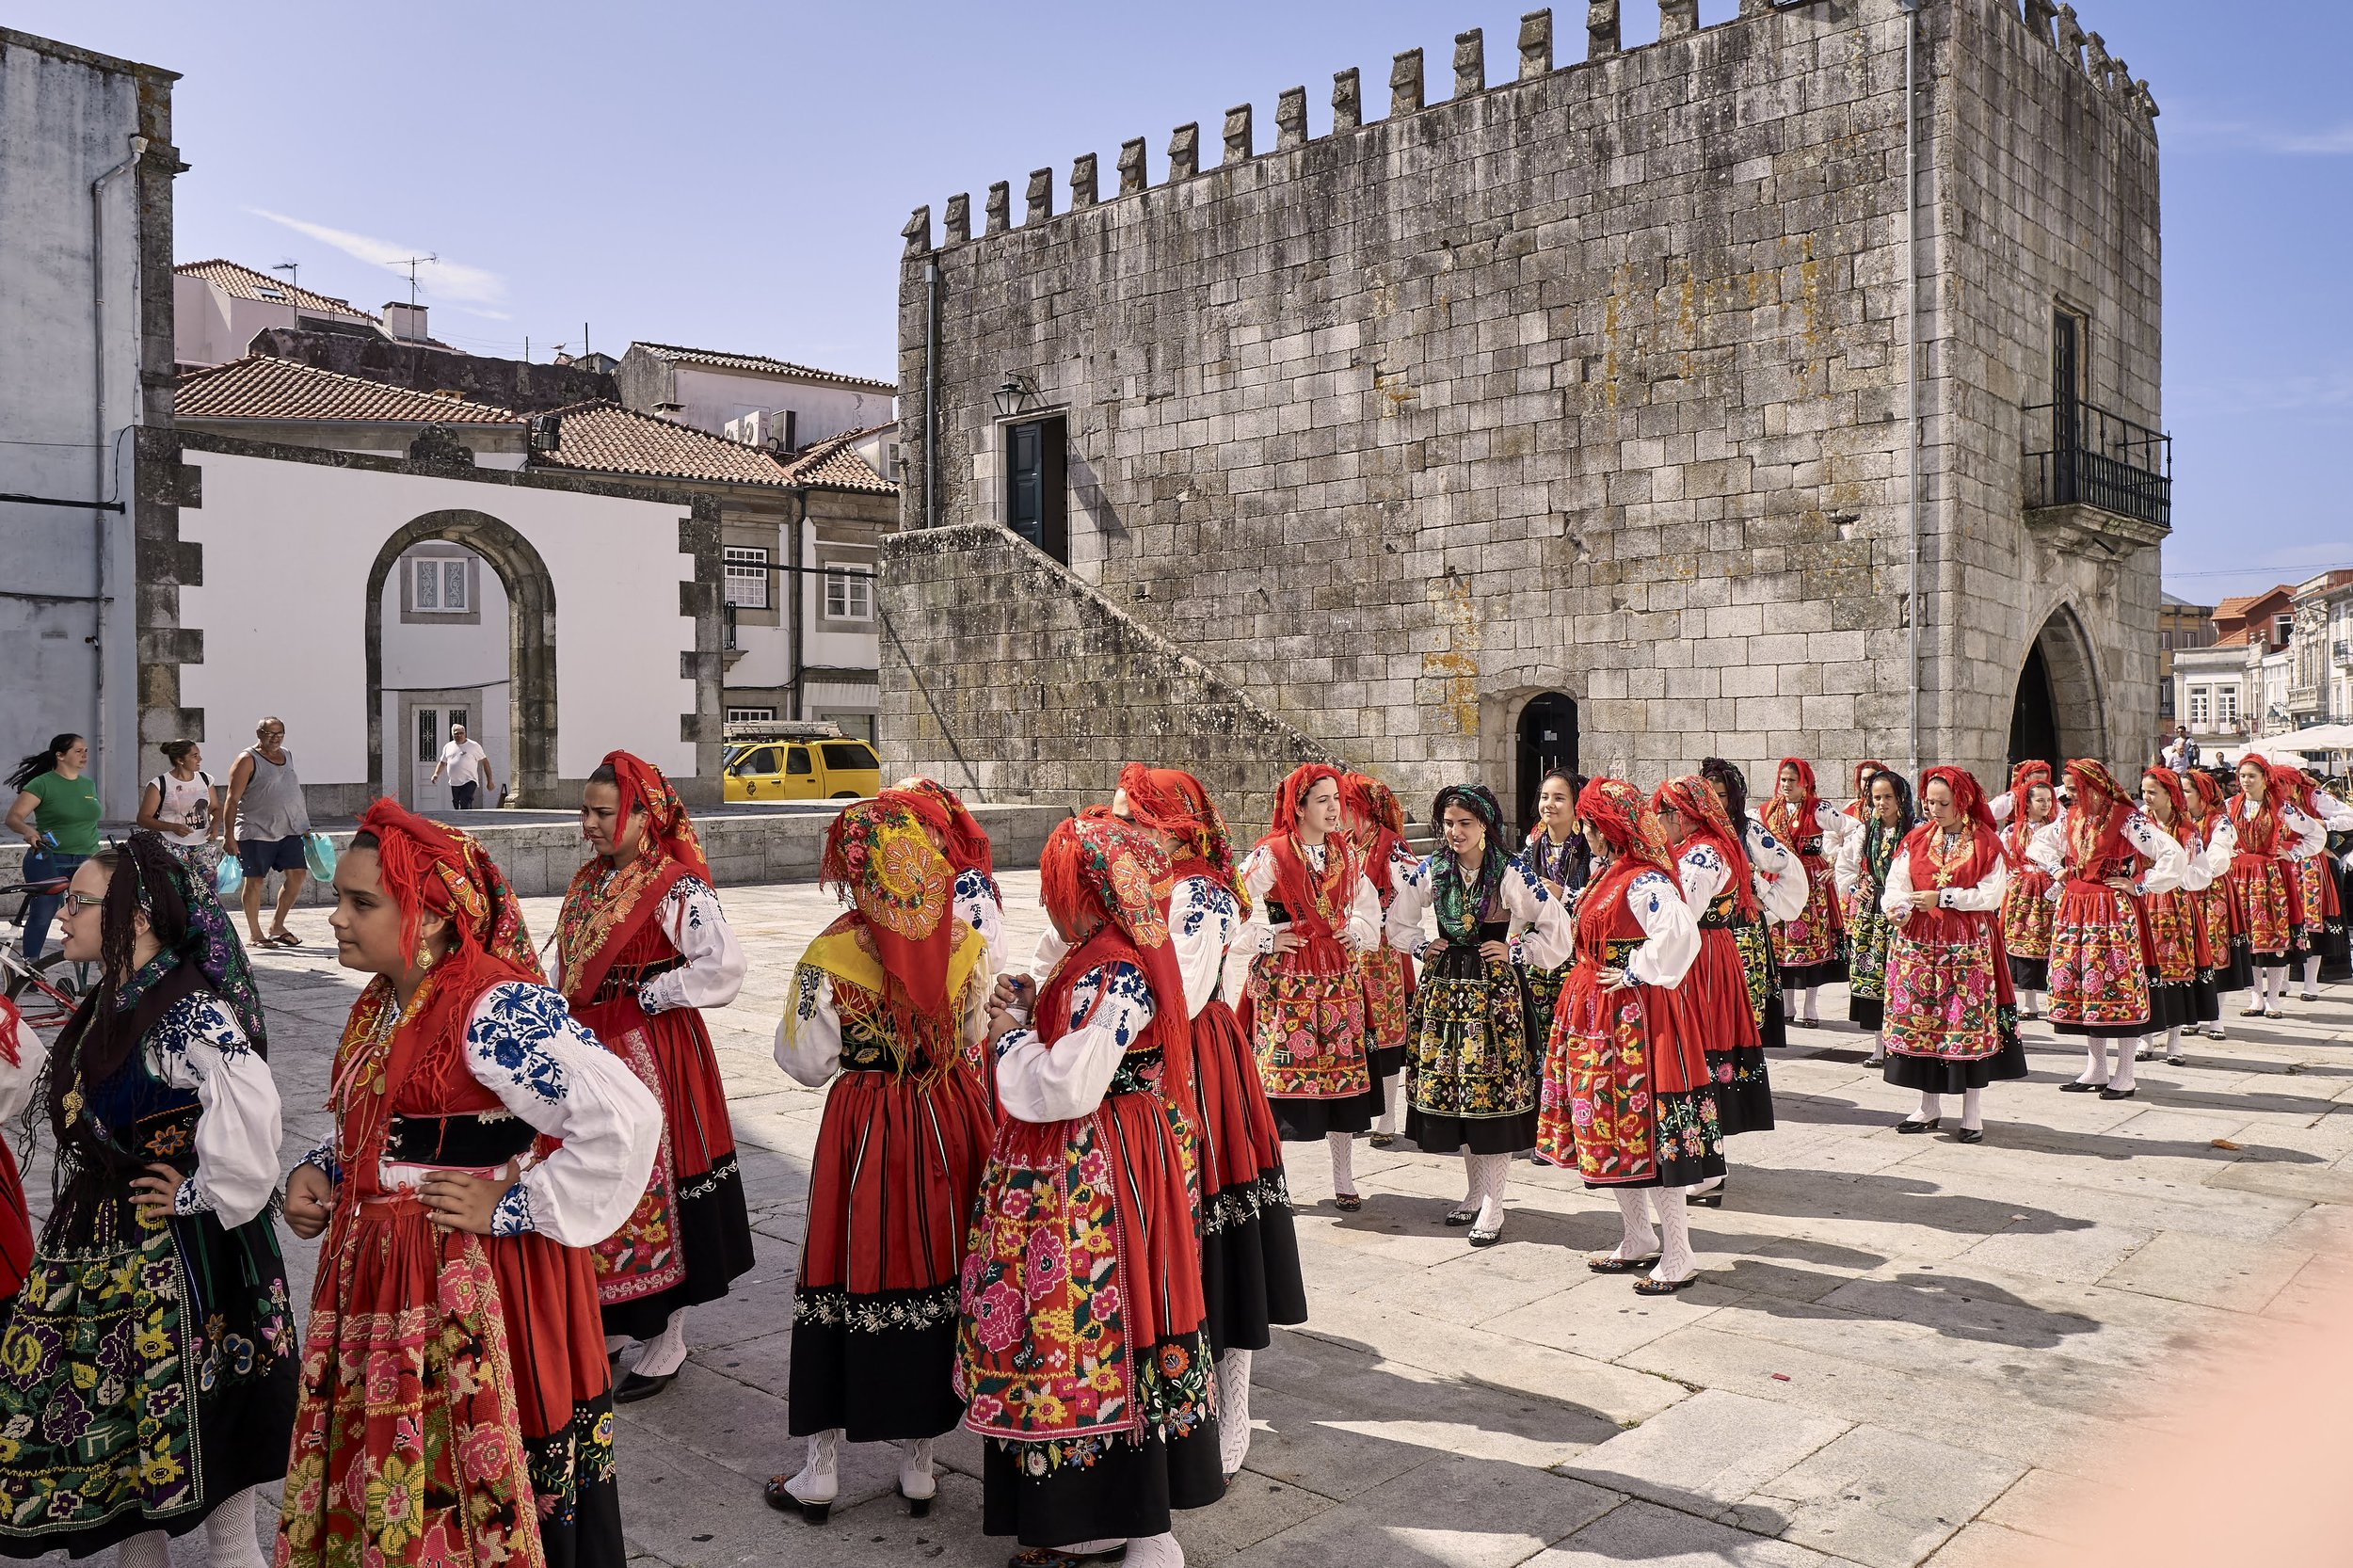 Typical Clothes of Viana during a Summer Festivity - © Vincent Bridenne